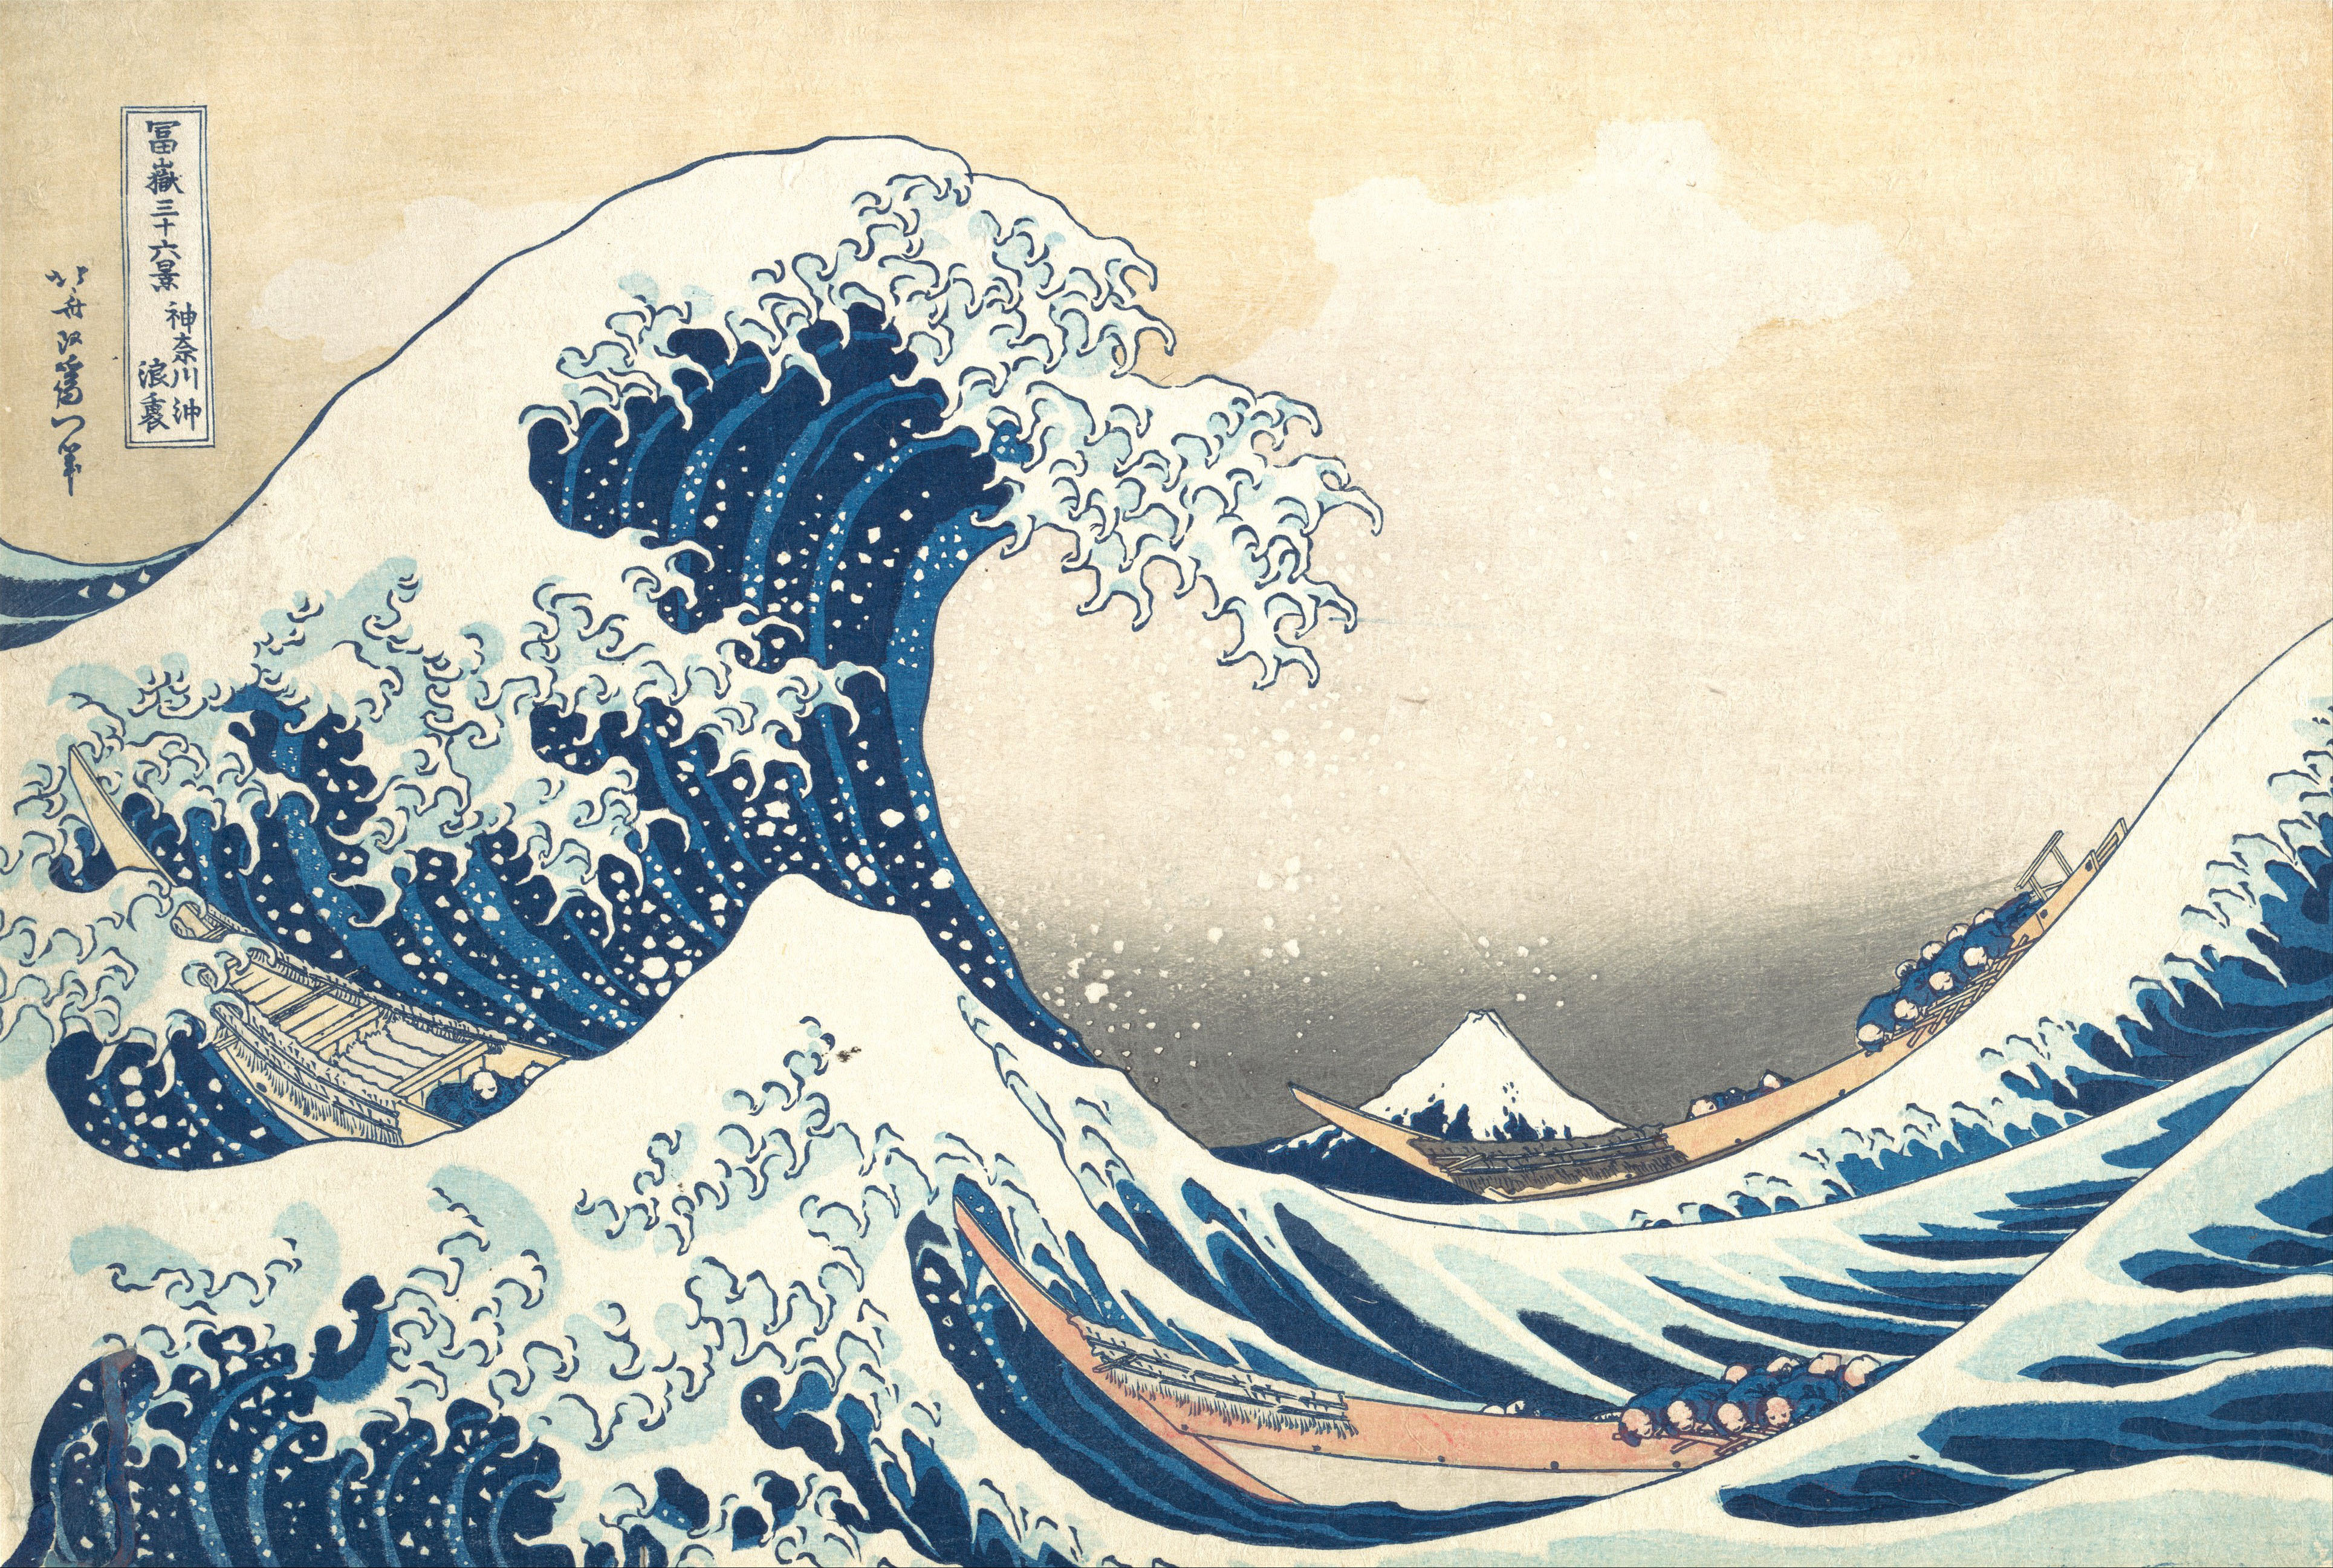 Poster - Hokusai, Katsushika The Great Wave